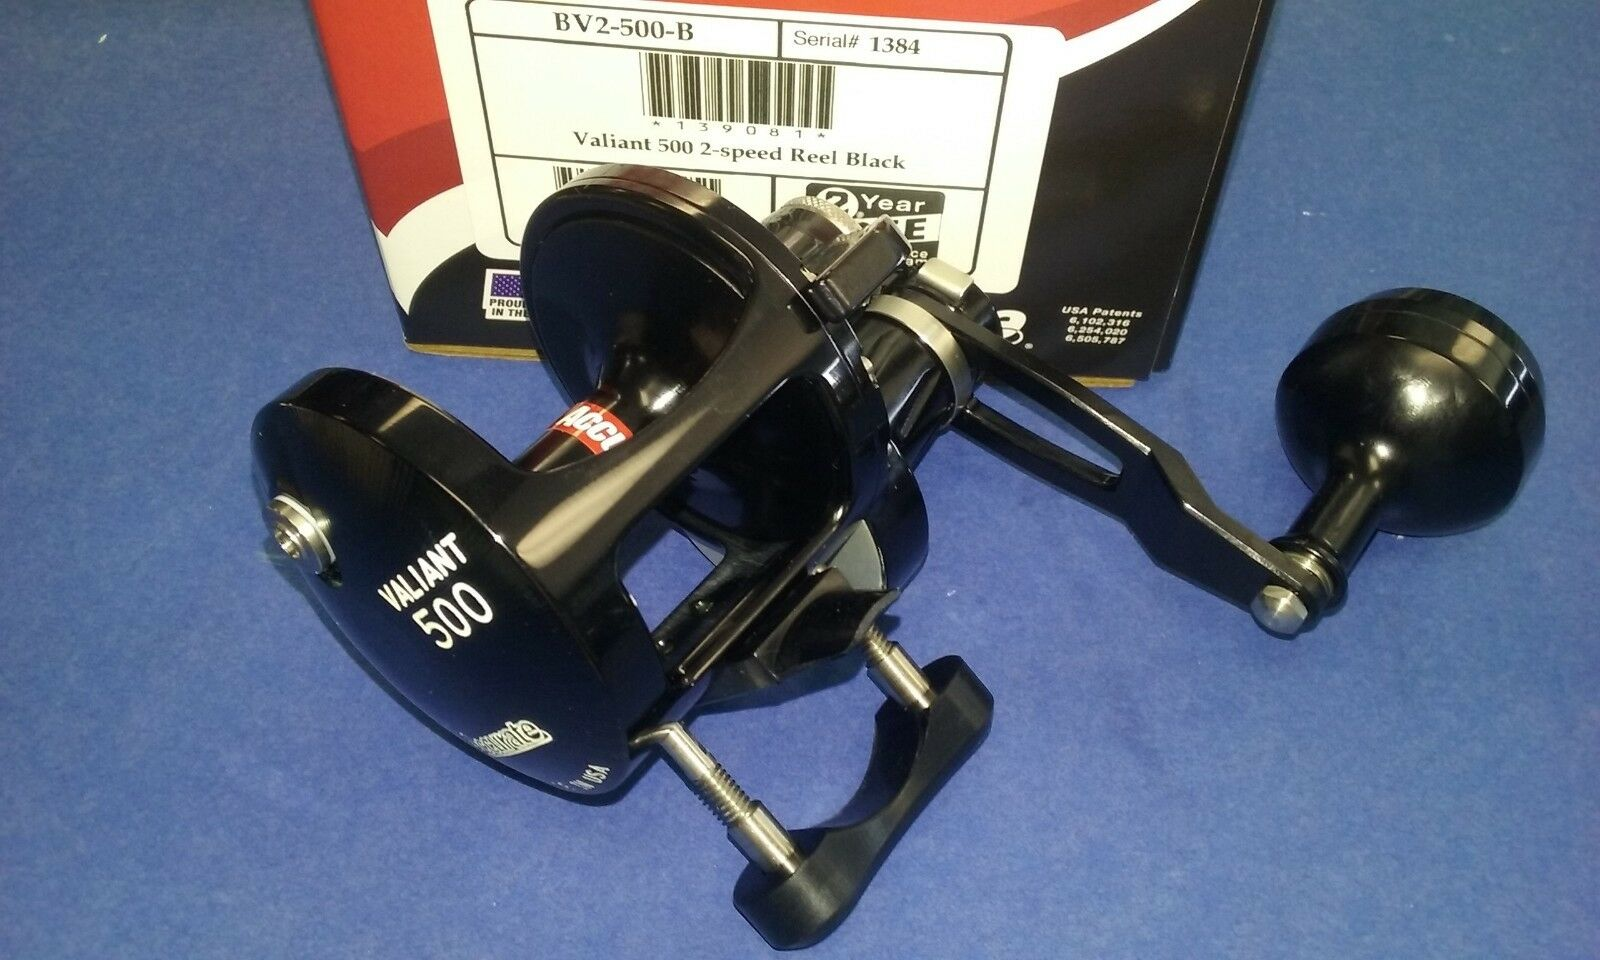 New Accurate Boss Valiant BV2-500B Two Speed Reel